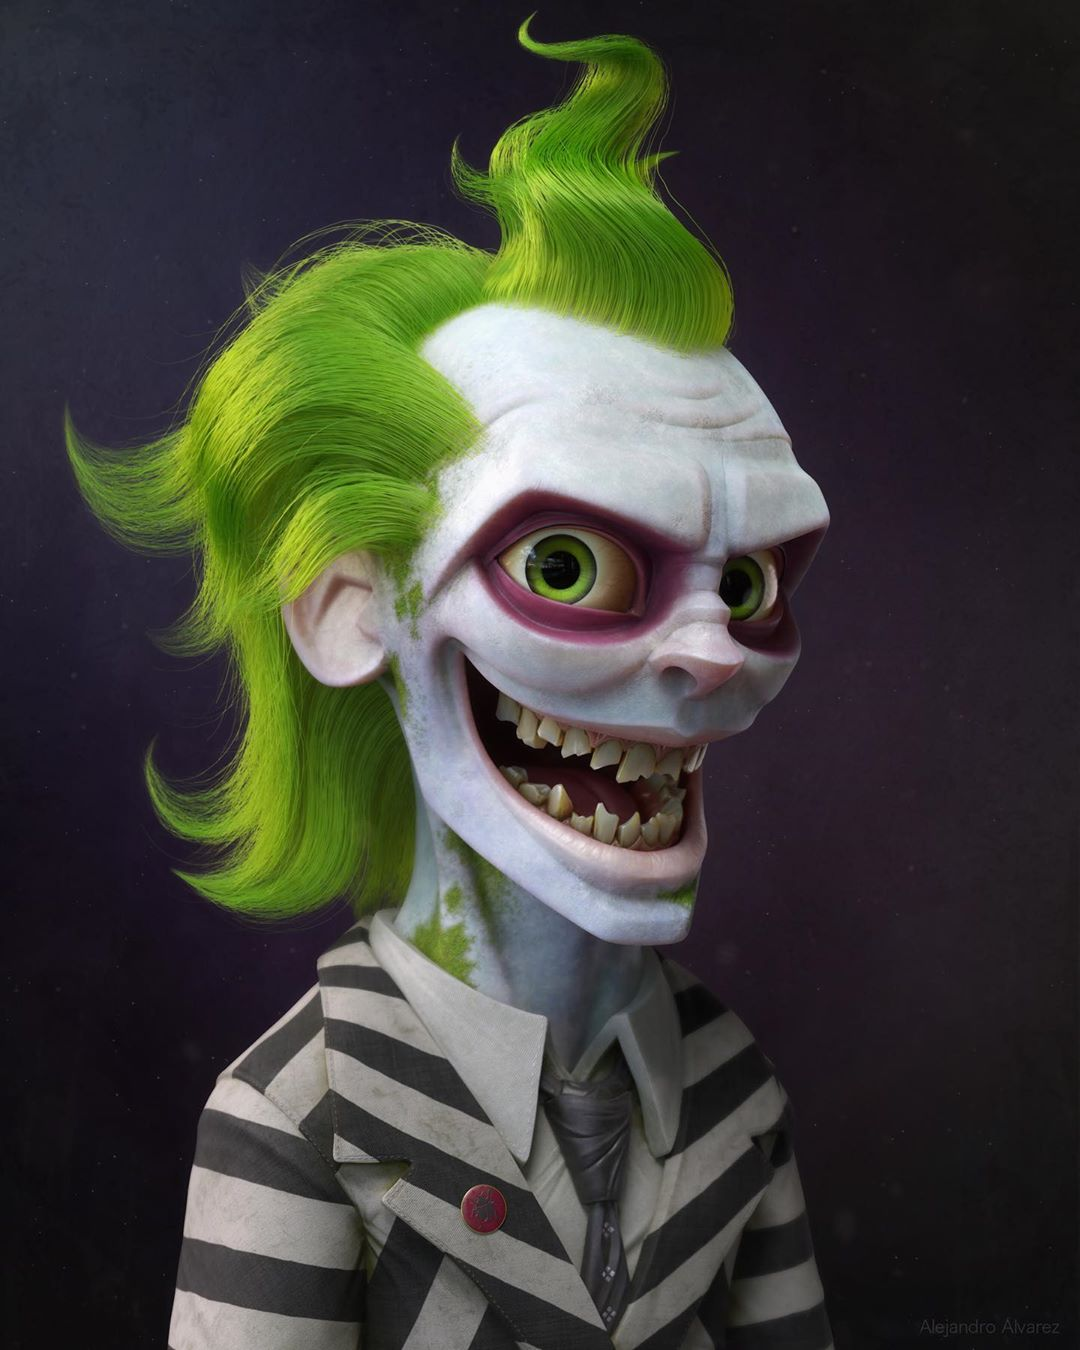 3d model designs green clown by alejandro alvarez mejia